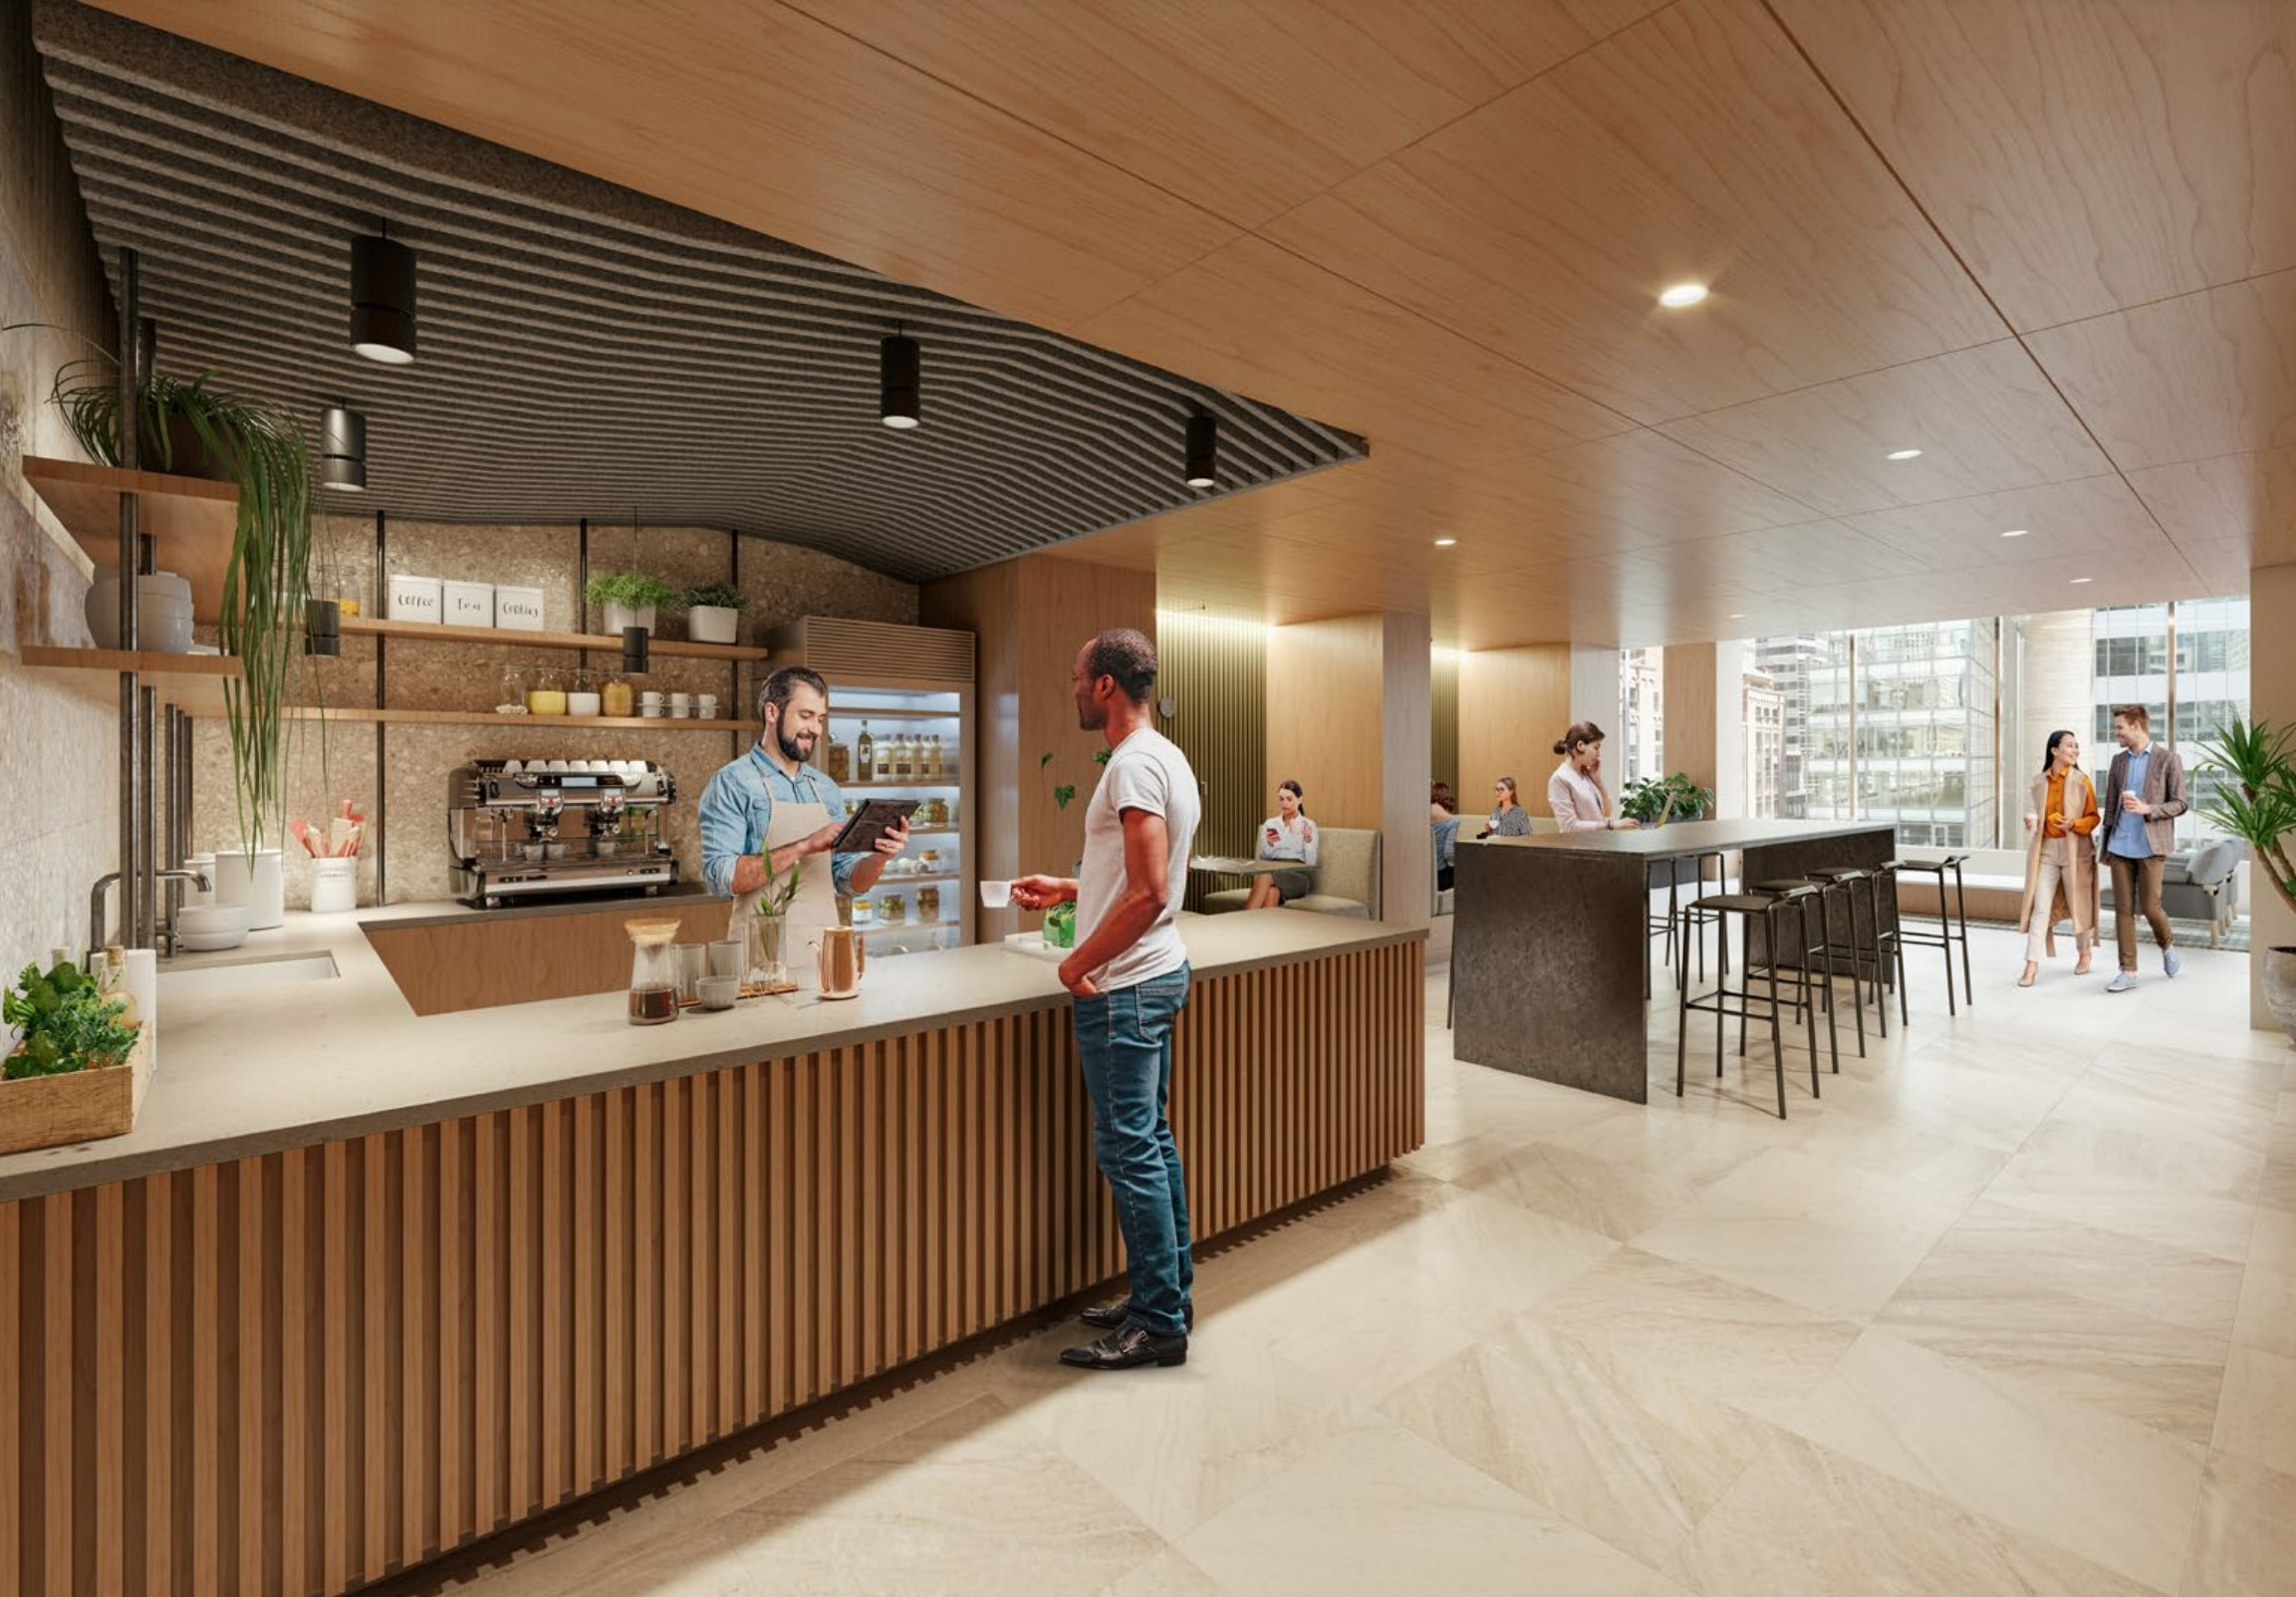 Barista Bar at The Water Tower Lounge Amenity Center